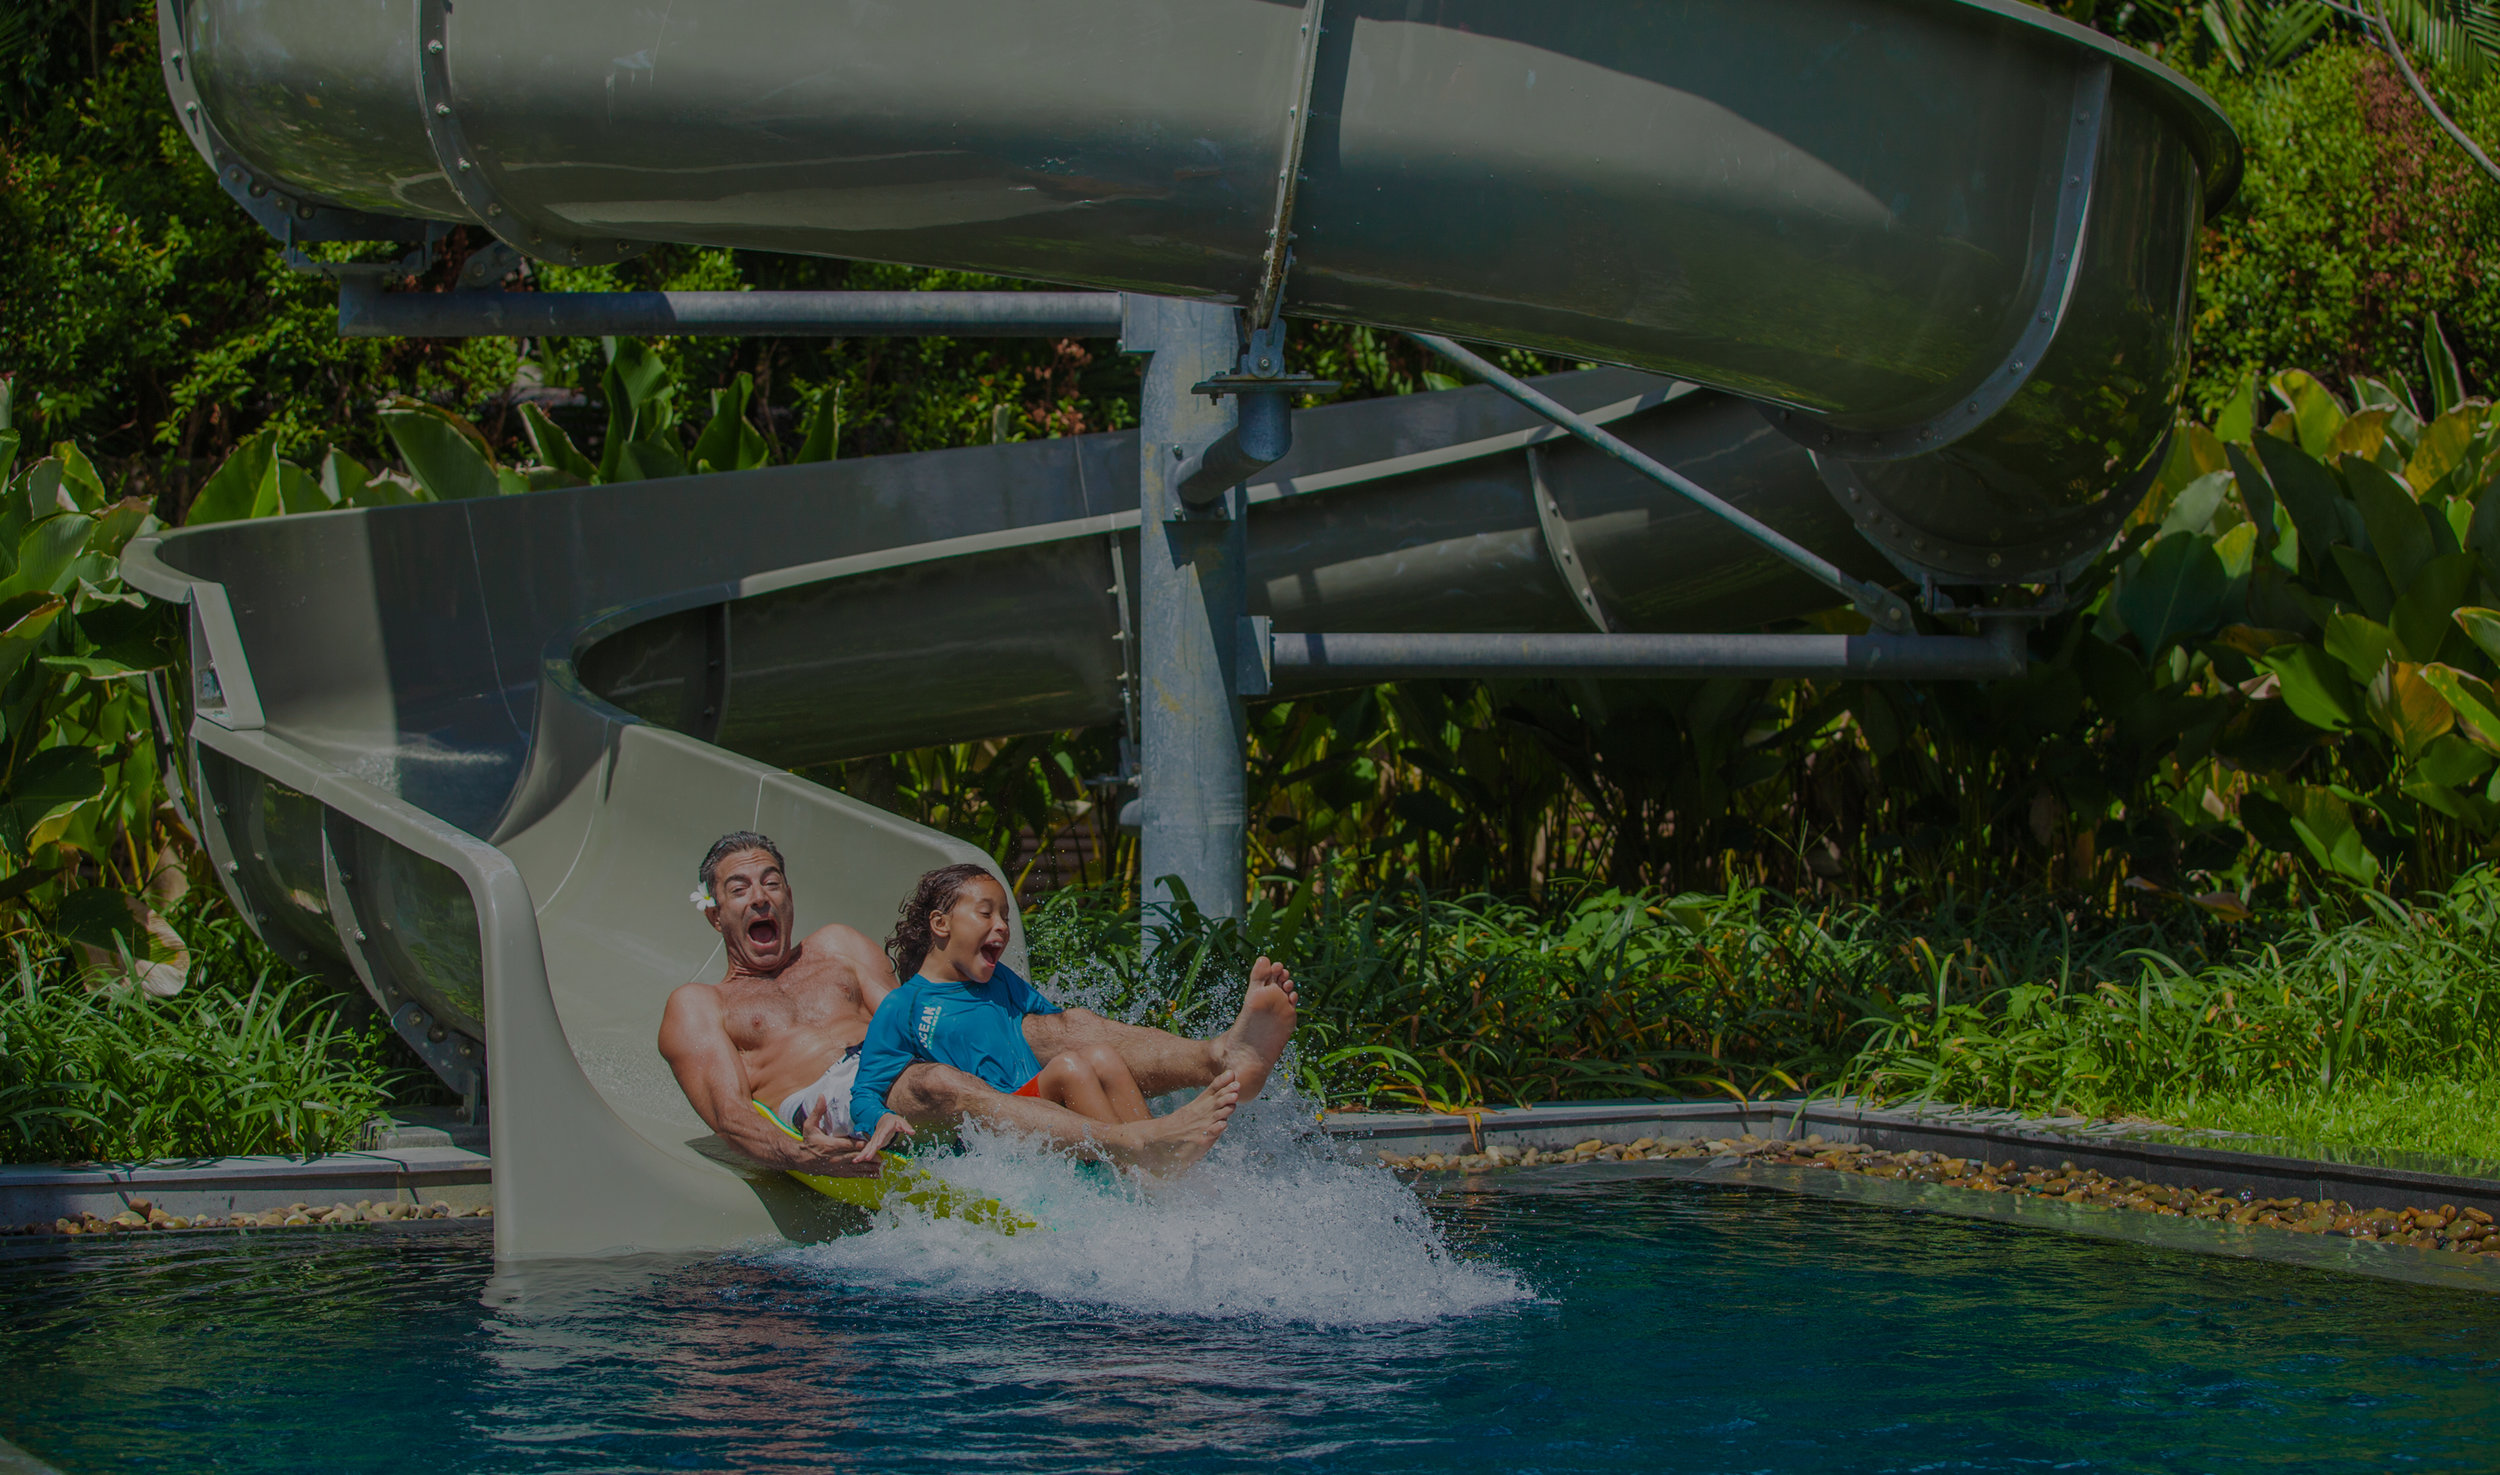 PICTURE FITNESS AND WELLNESS FACILITIES,WATERSLIDES AND INSTRUCTIONAL KITCHENSEXCLUSIVELY YOURS -